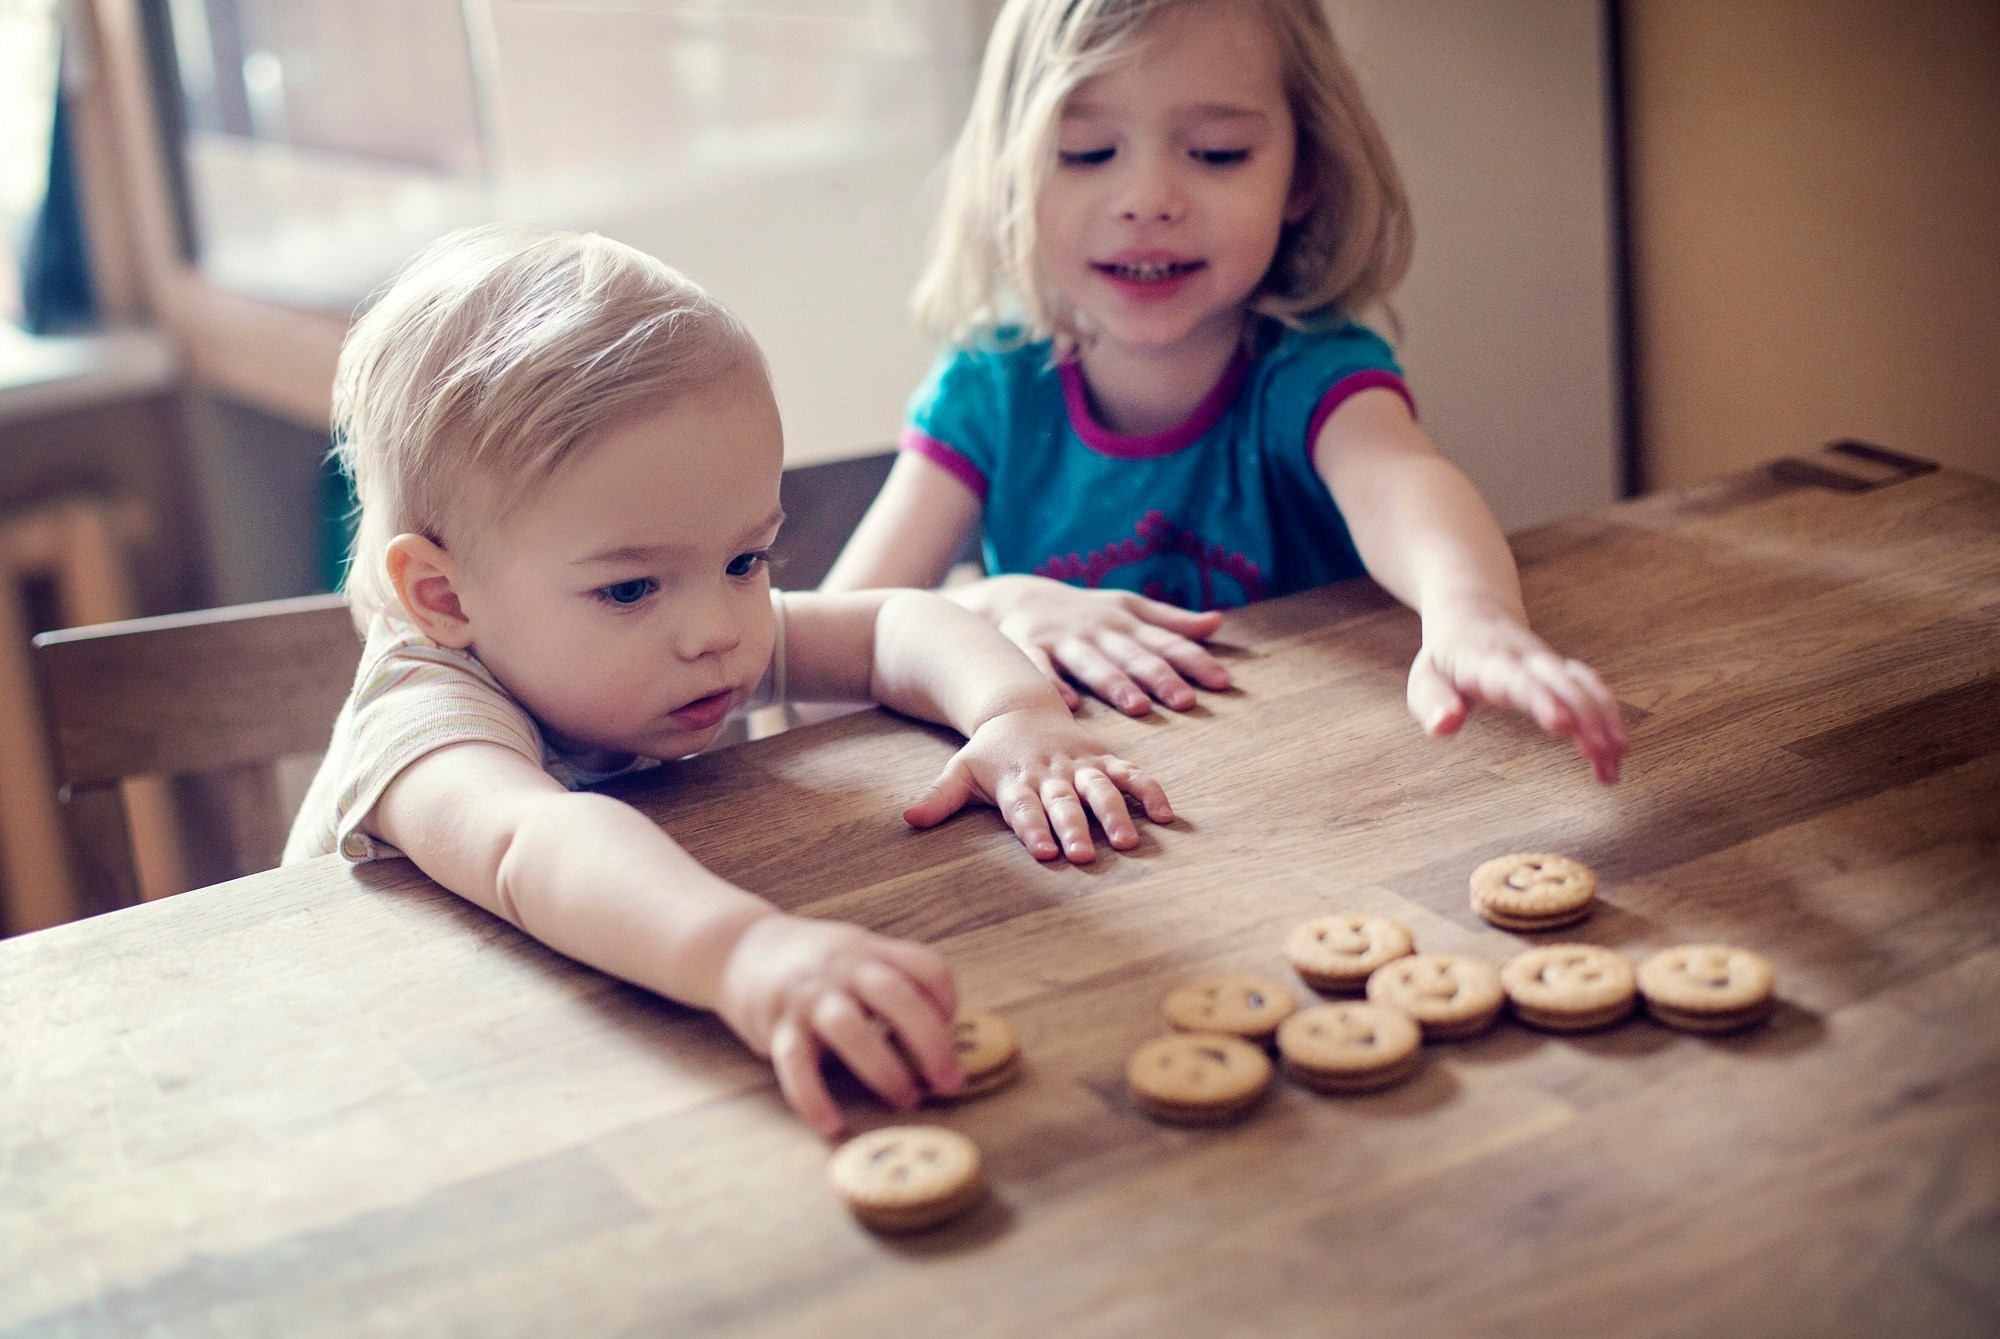 Later-born siblings of children with autism spectrum disorder or attention-deficit/hyperactivity disorder have an elevated risk of being diagnosed with the same or the other disorder.